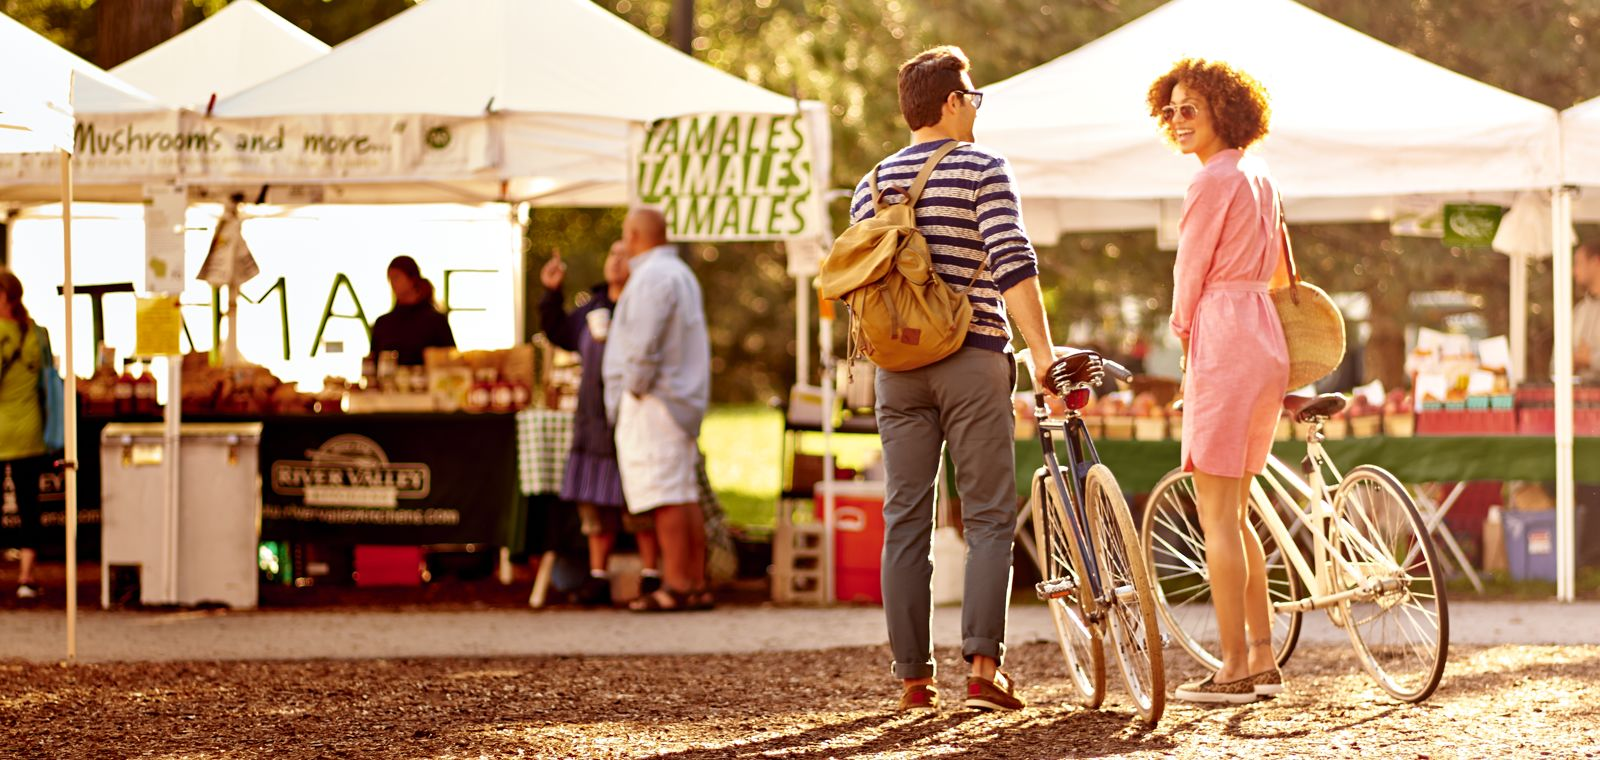 People With Bikes At Farmers Market